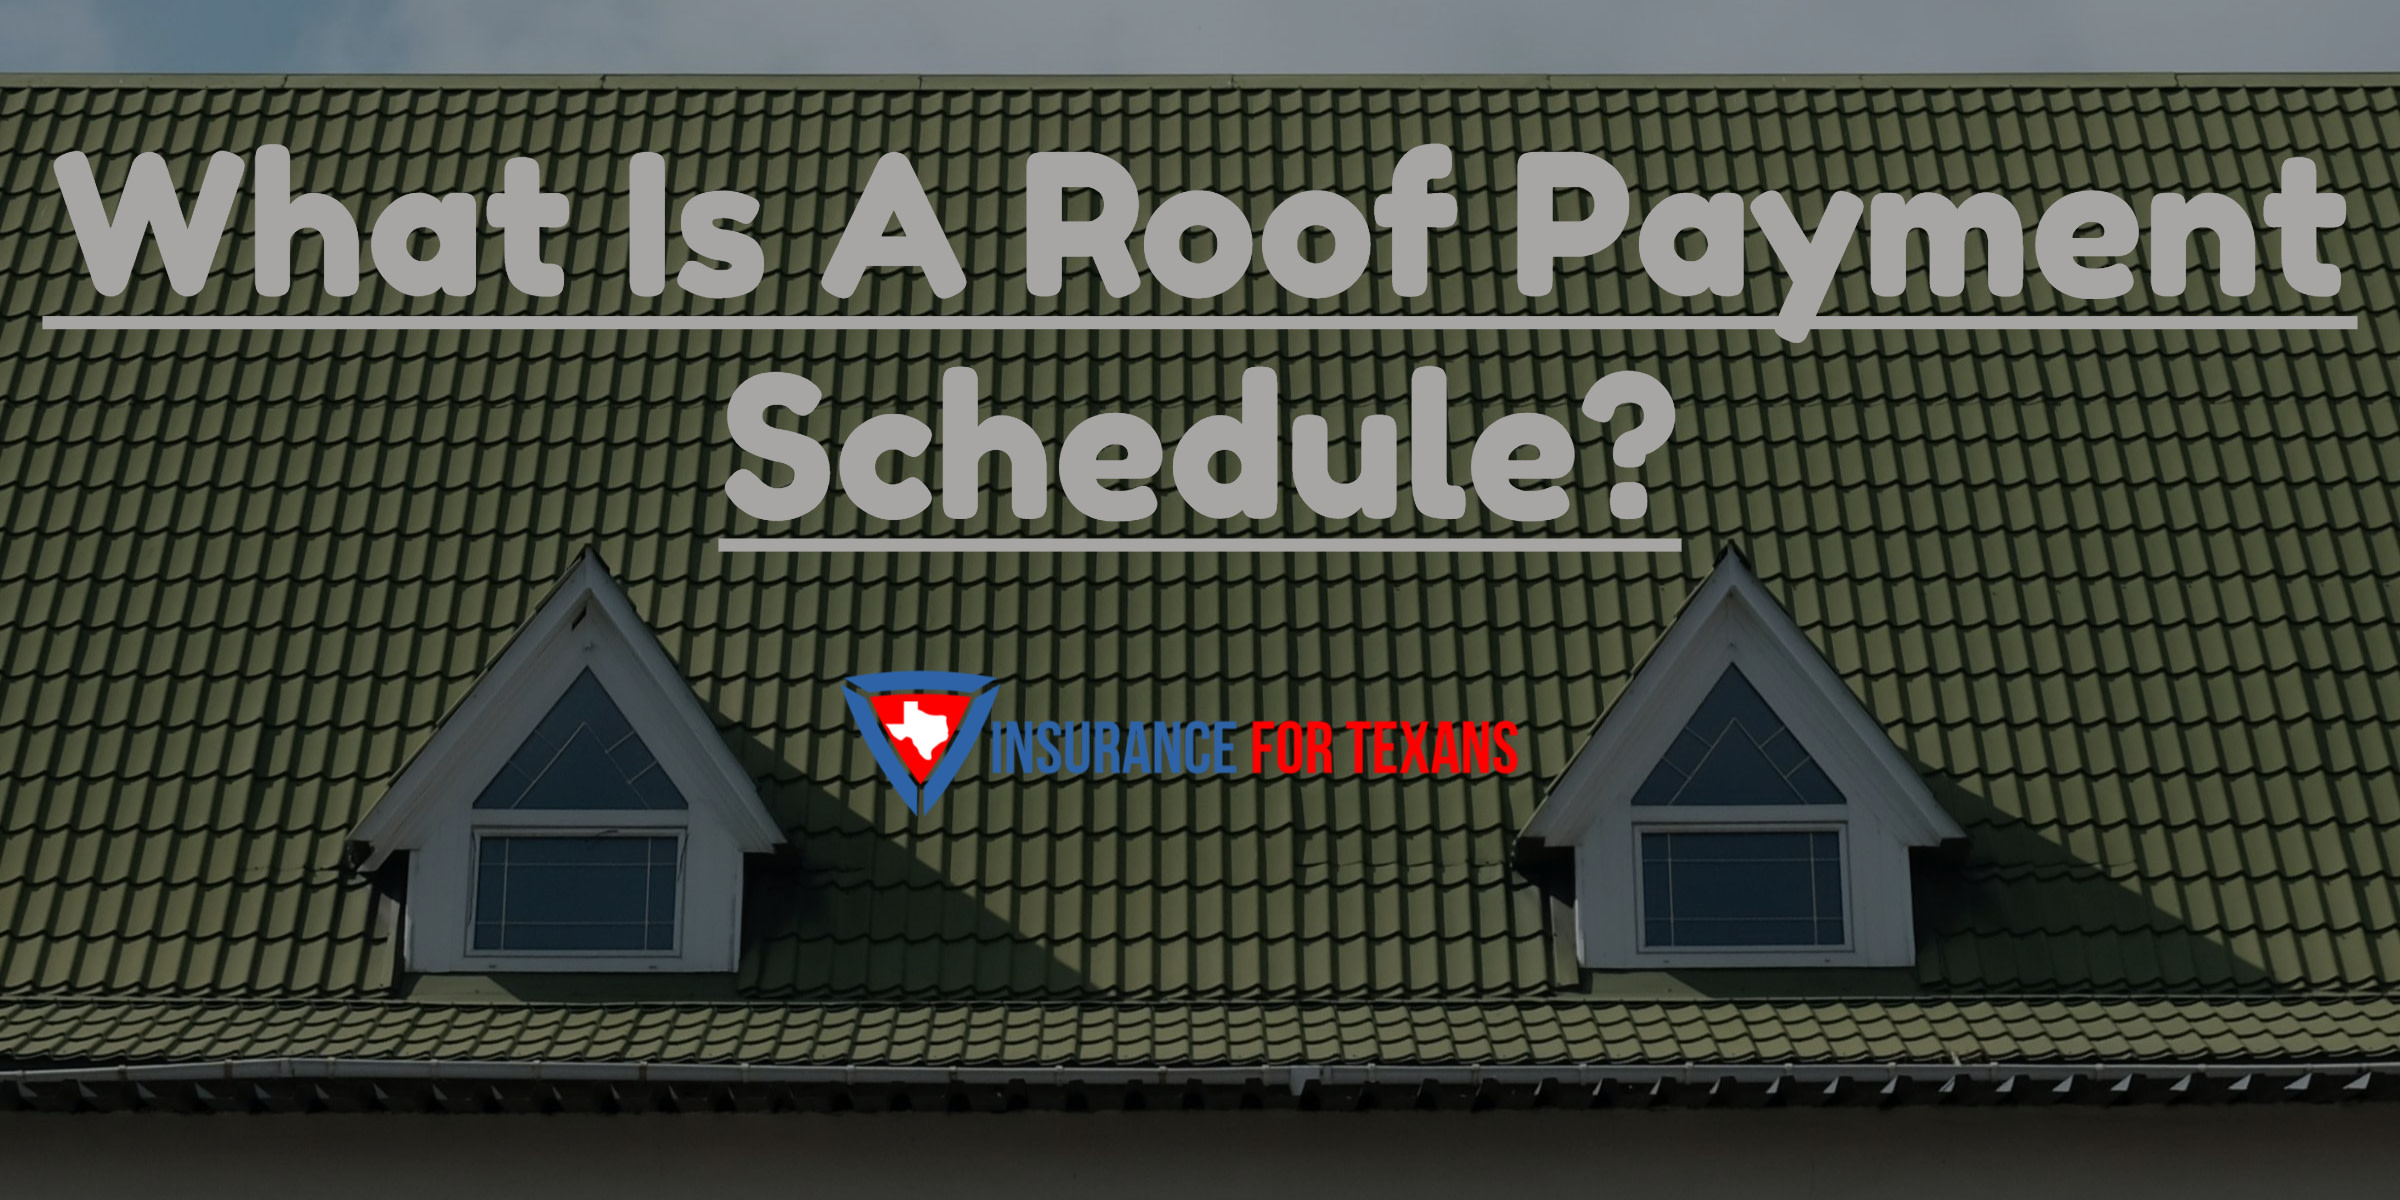 What is a roof payment schedule and why do I care?